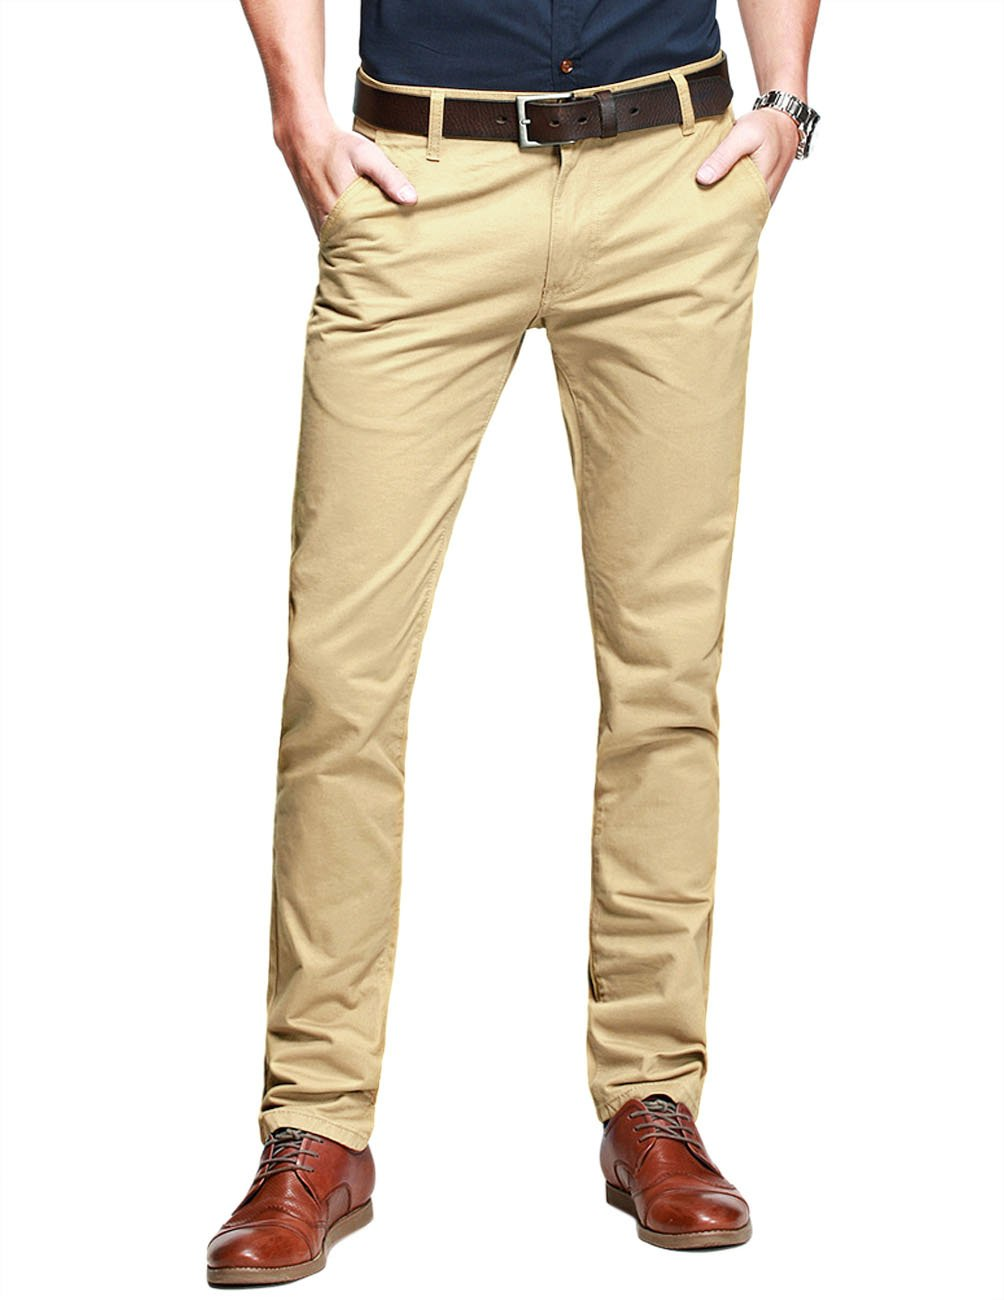 Match Men's Slim Tapered Casual Trousers#8025